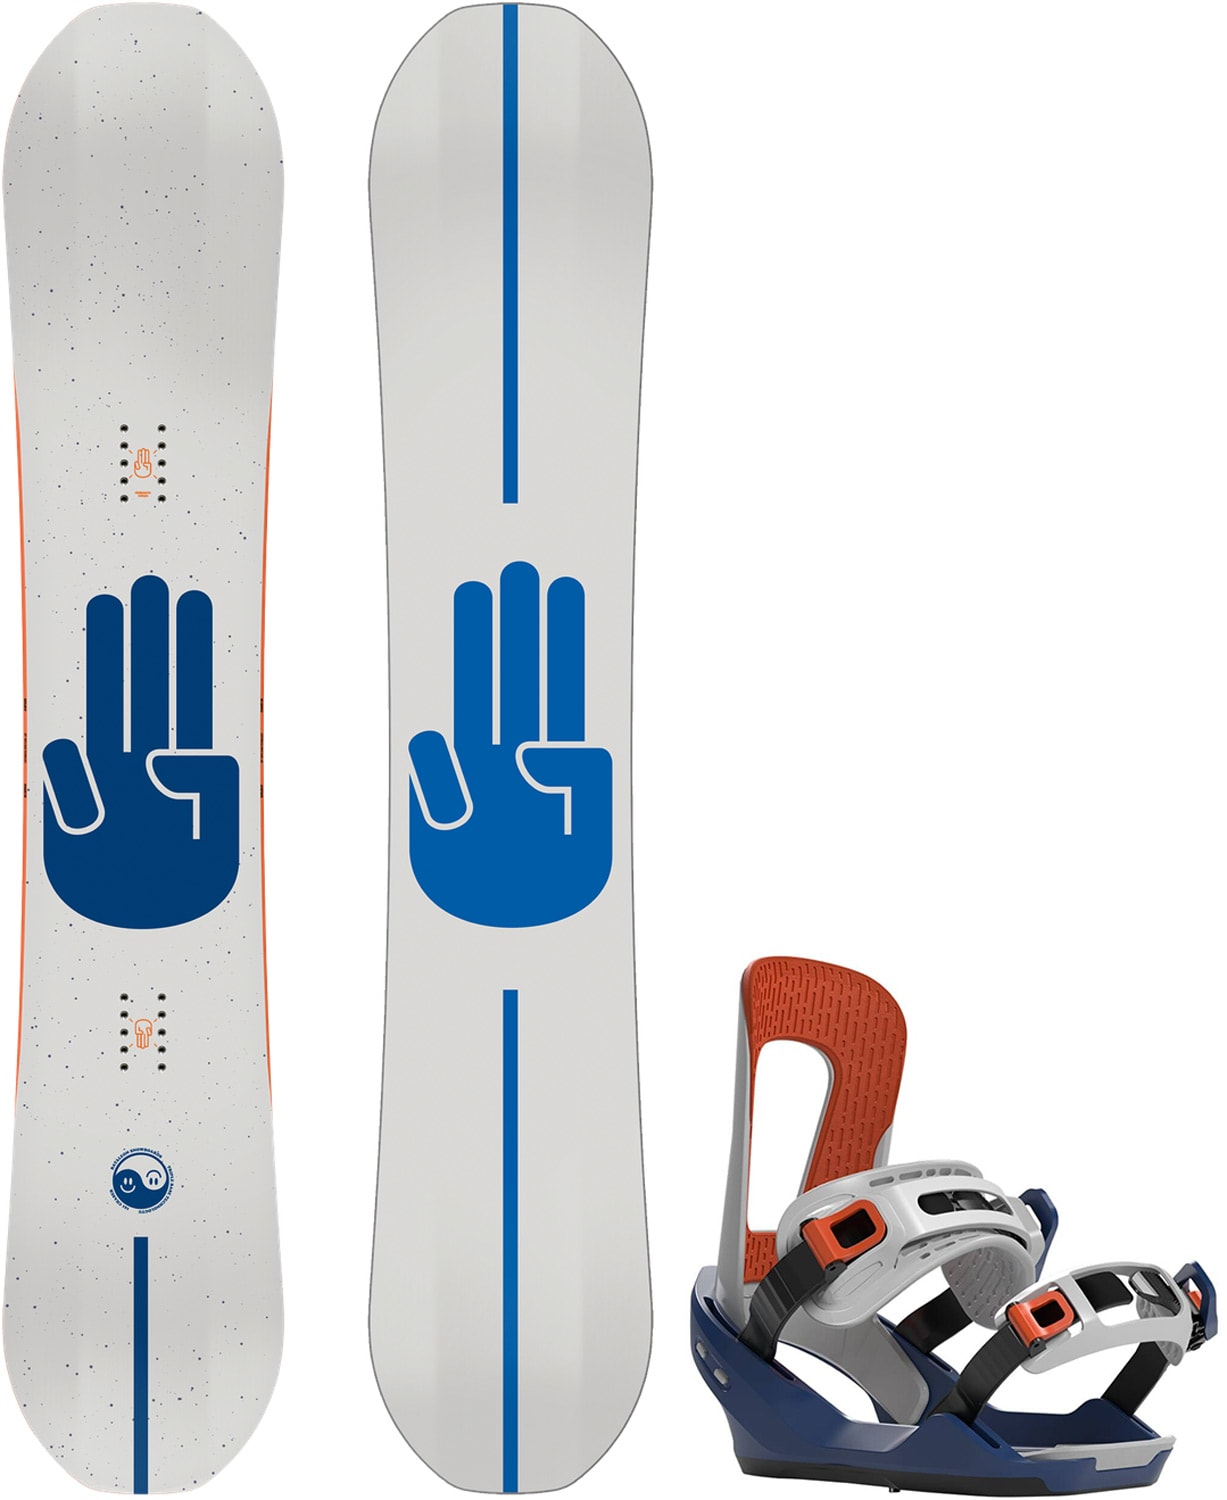 Bataleon Chaser Wide Snowboard W/ Chaser Bindings 2020